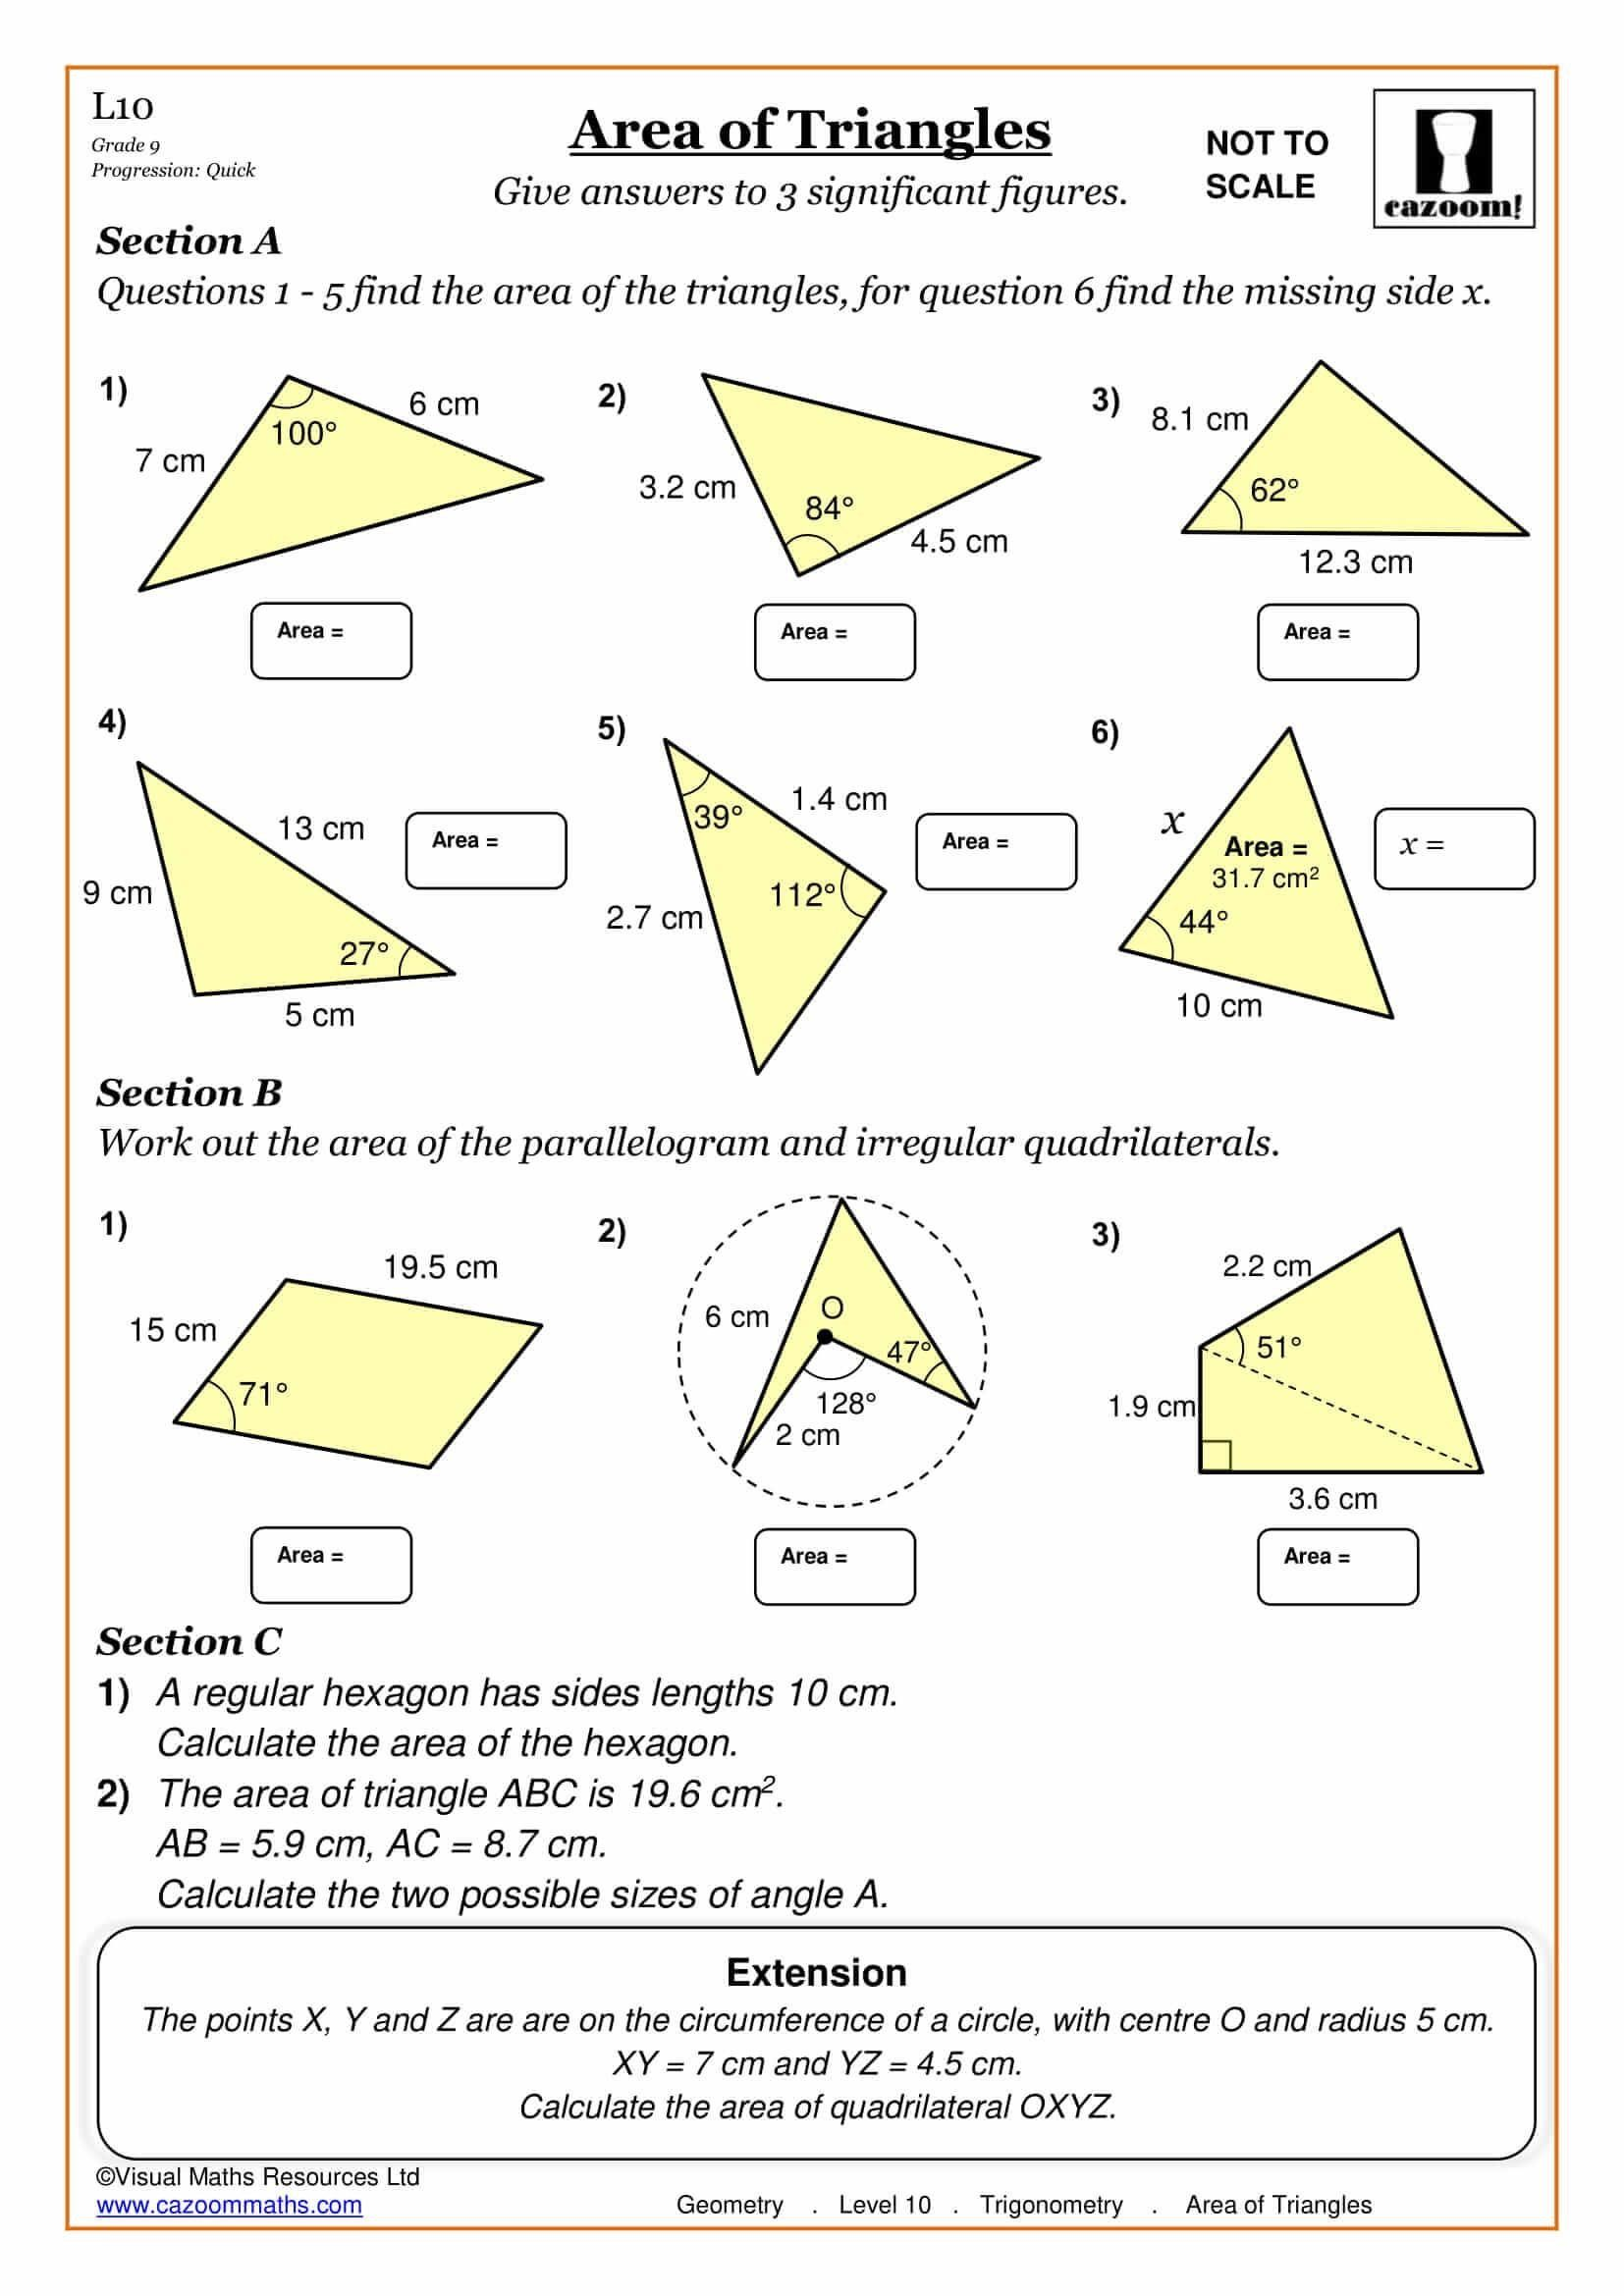 Introduction To Trigonometry Worksheet Answers Area Of Triangles Maths Worksheet Trigonometry Trigonometry Worksheets Math Worksheet